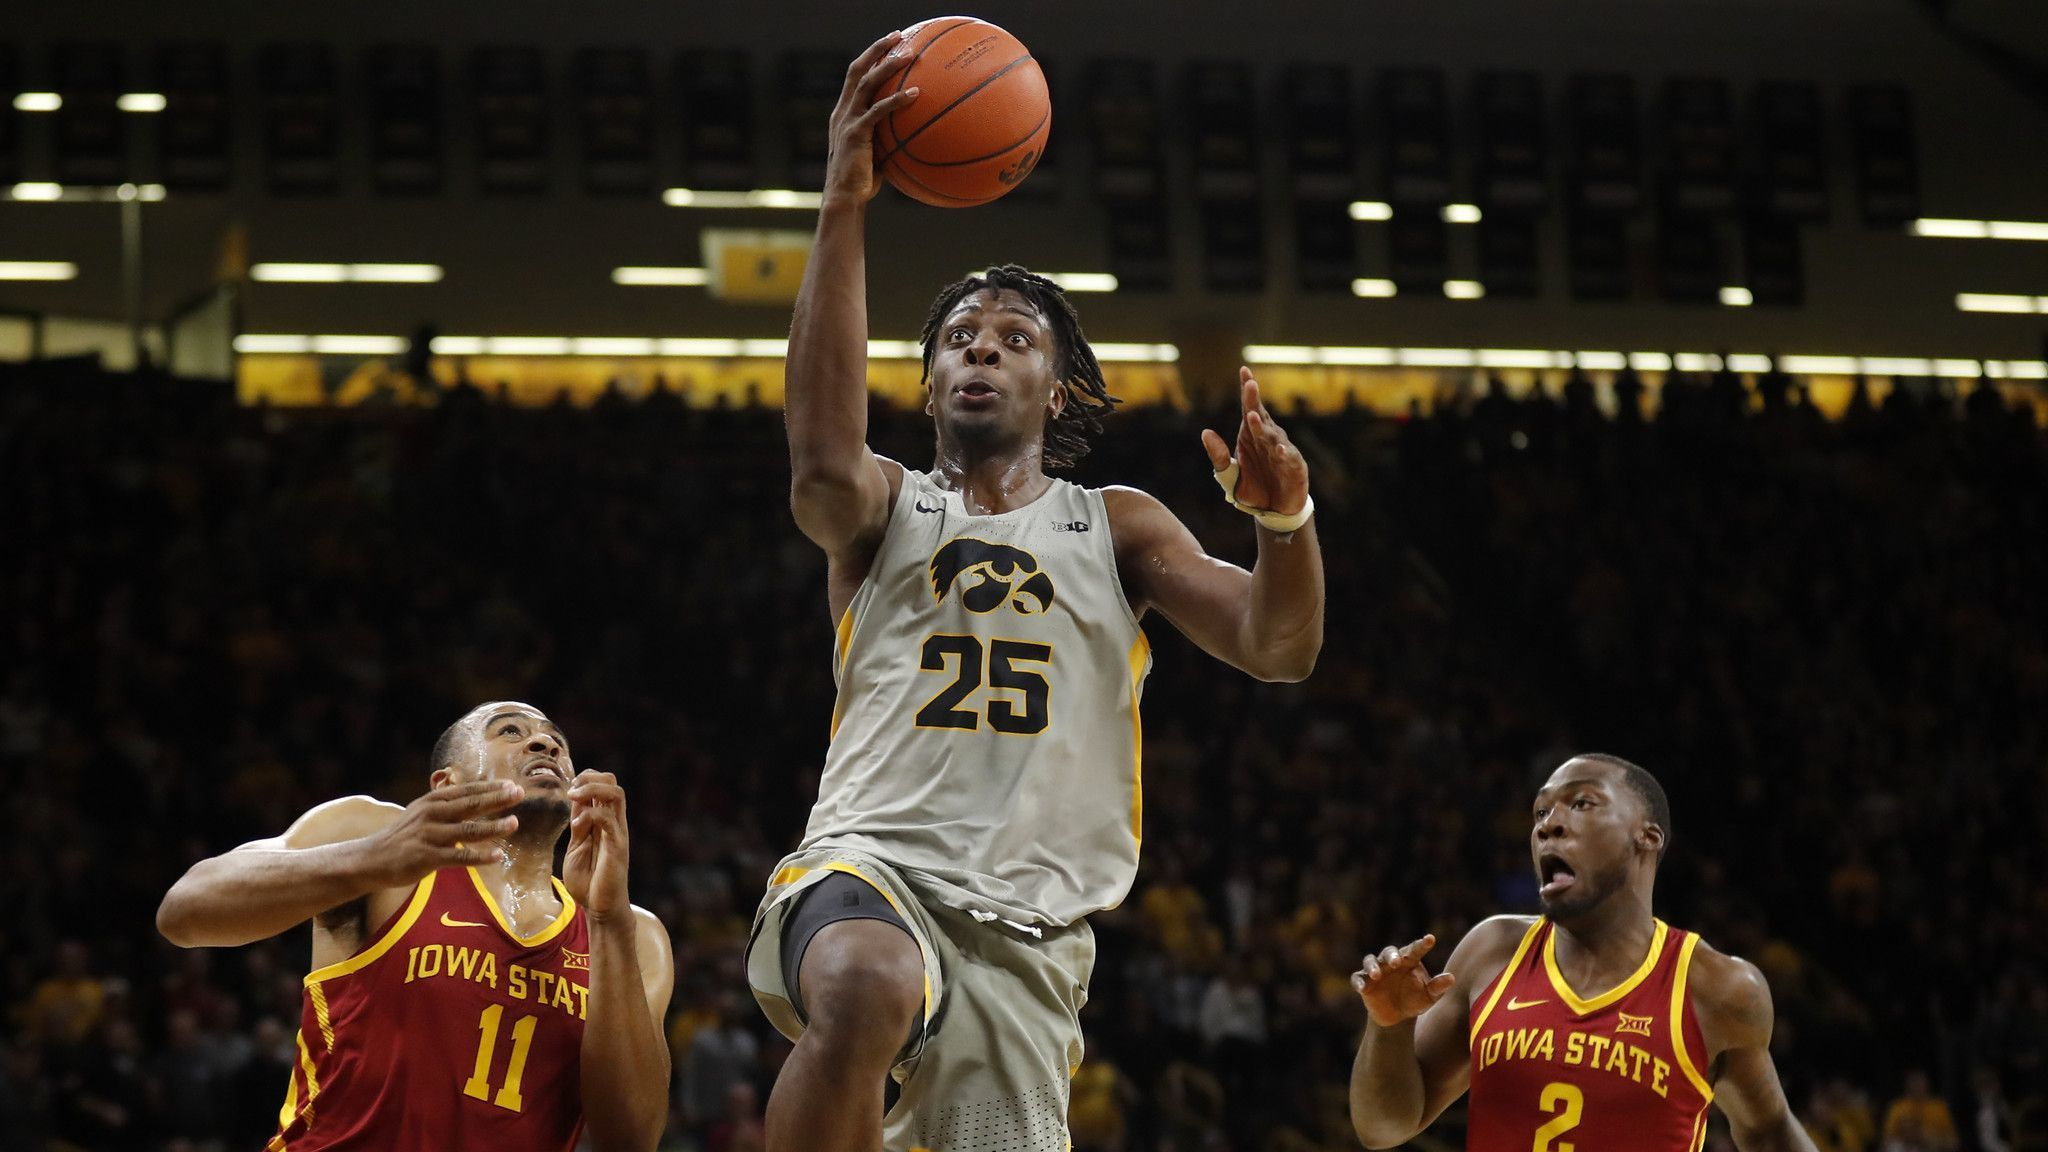 College basketball: Tyler Cook has 26 points, No. 18 Iowa beats Iowa State 98-84